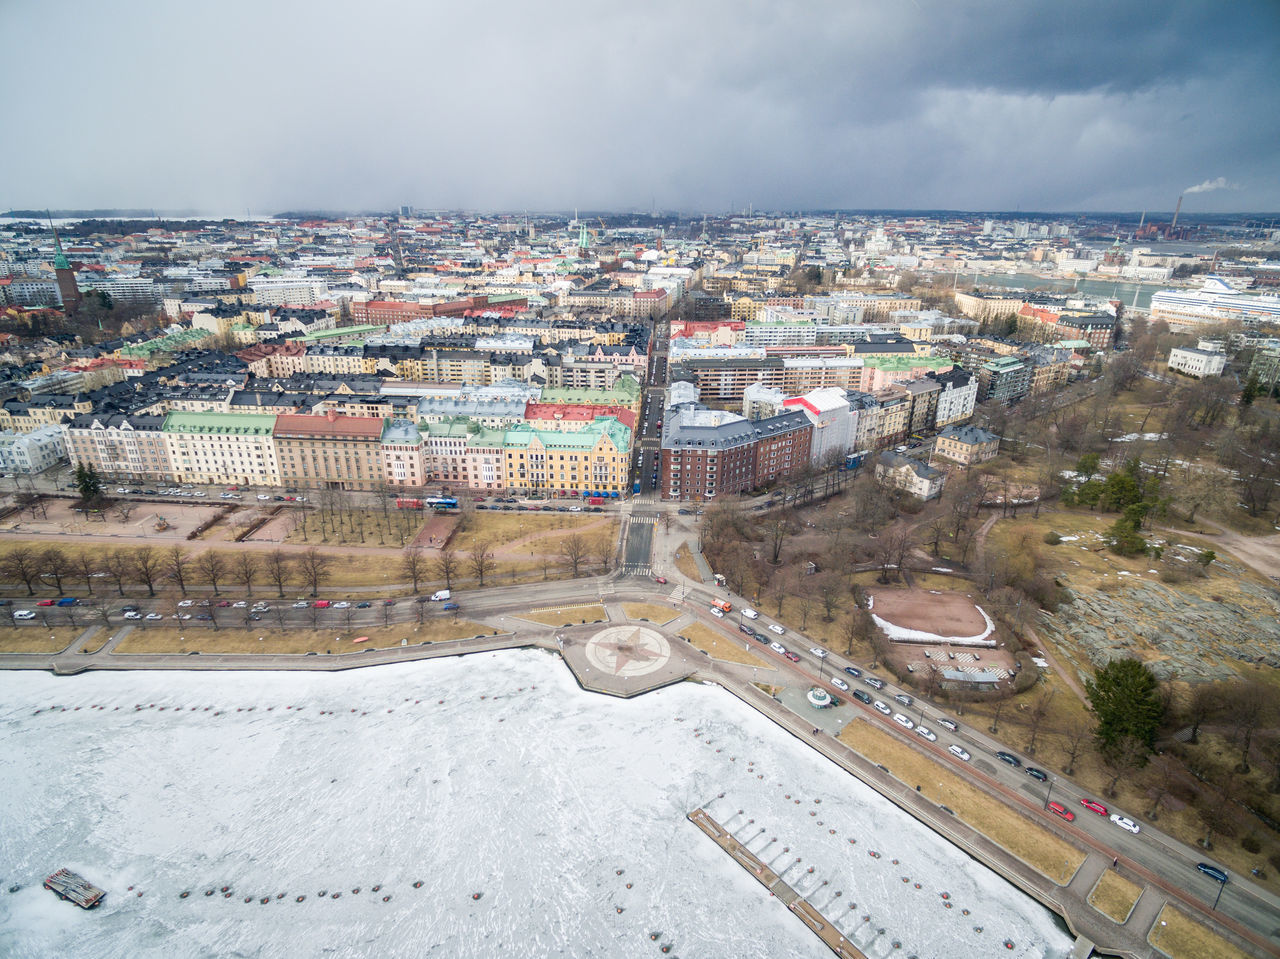 Drone shots from Helsinki on 24th of March 2017. Architecture Building Exterior Built Structure City City City Life Cityscape Day Dji Drone  Flying High Helsinki High Angle View History House Lights Living Outdoors Residential Building Sky Spring Top Perspective Top View Travel Destinations Winter